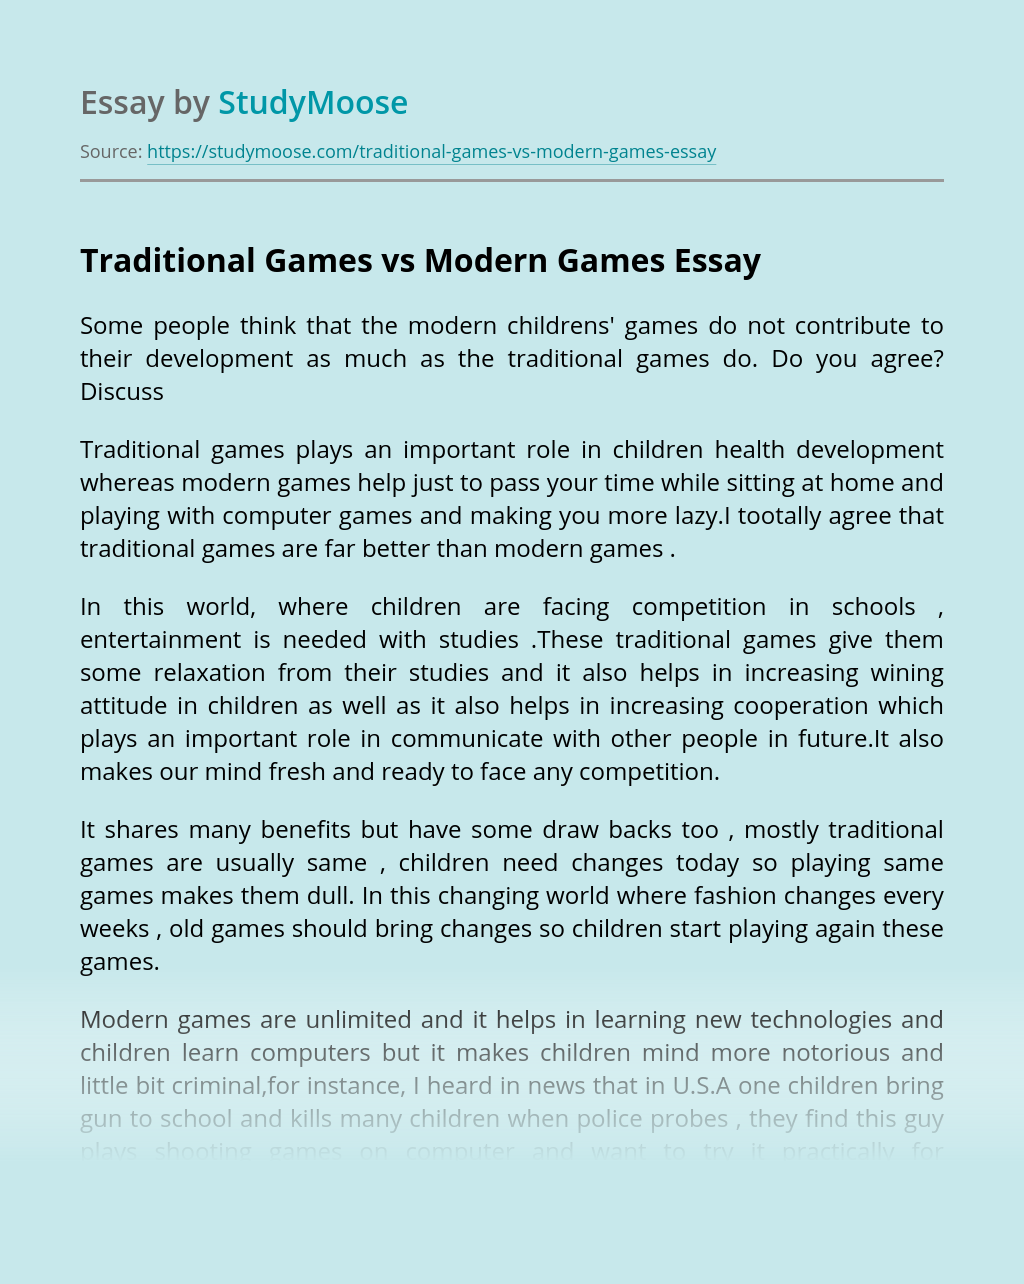 Traditional Games vs Modern Games